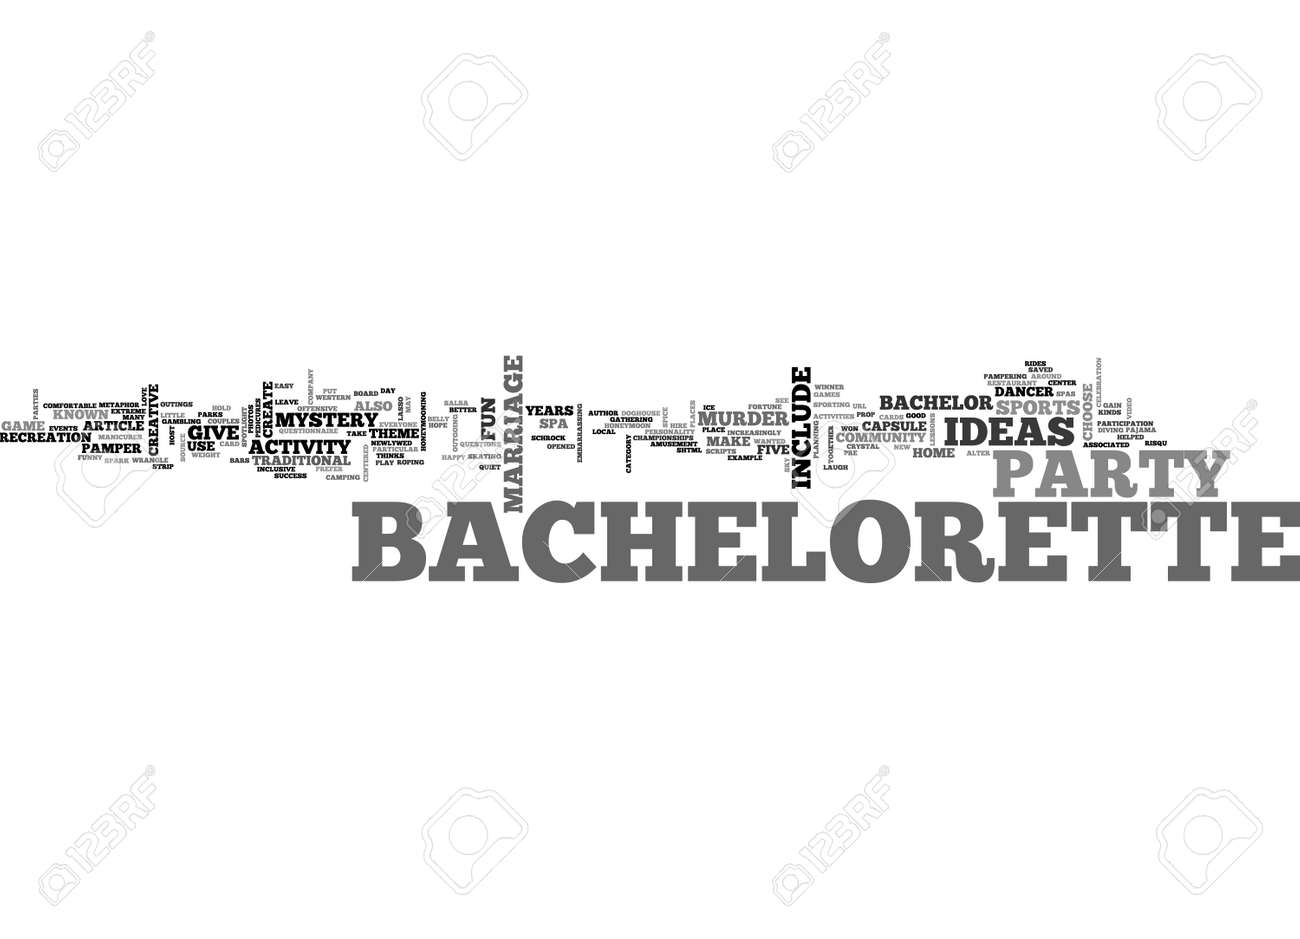 BACHELORETTE PARTY IDEAS THAT WON T LEAVE YOU IN THE DOGHOUSE ...